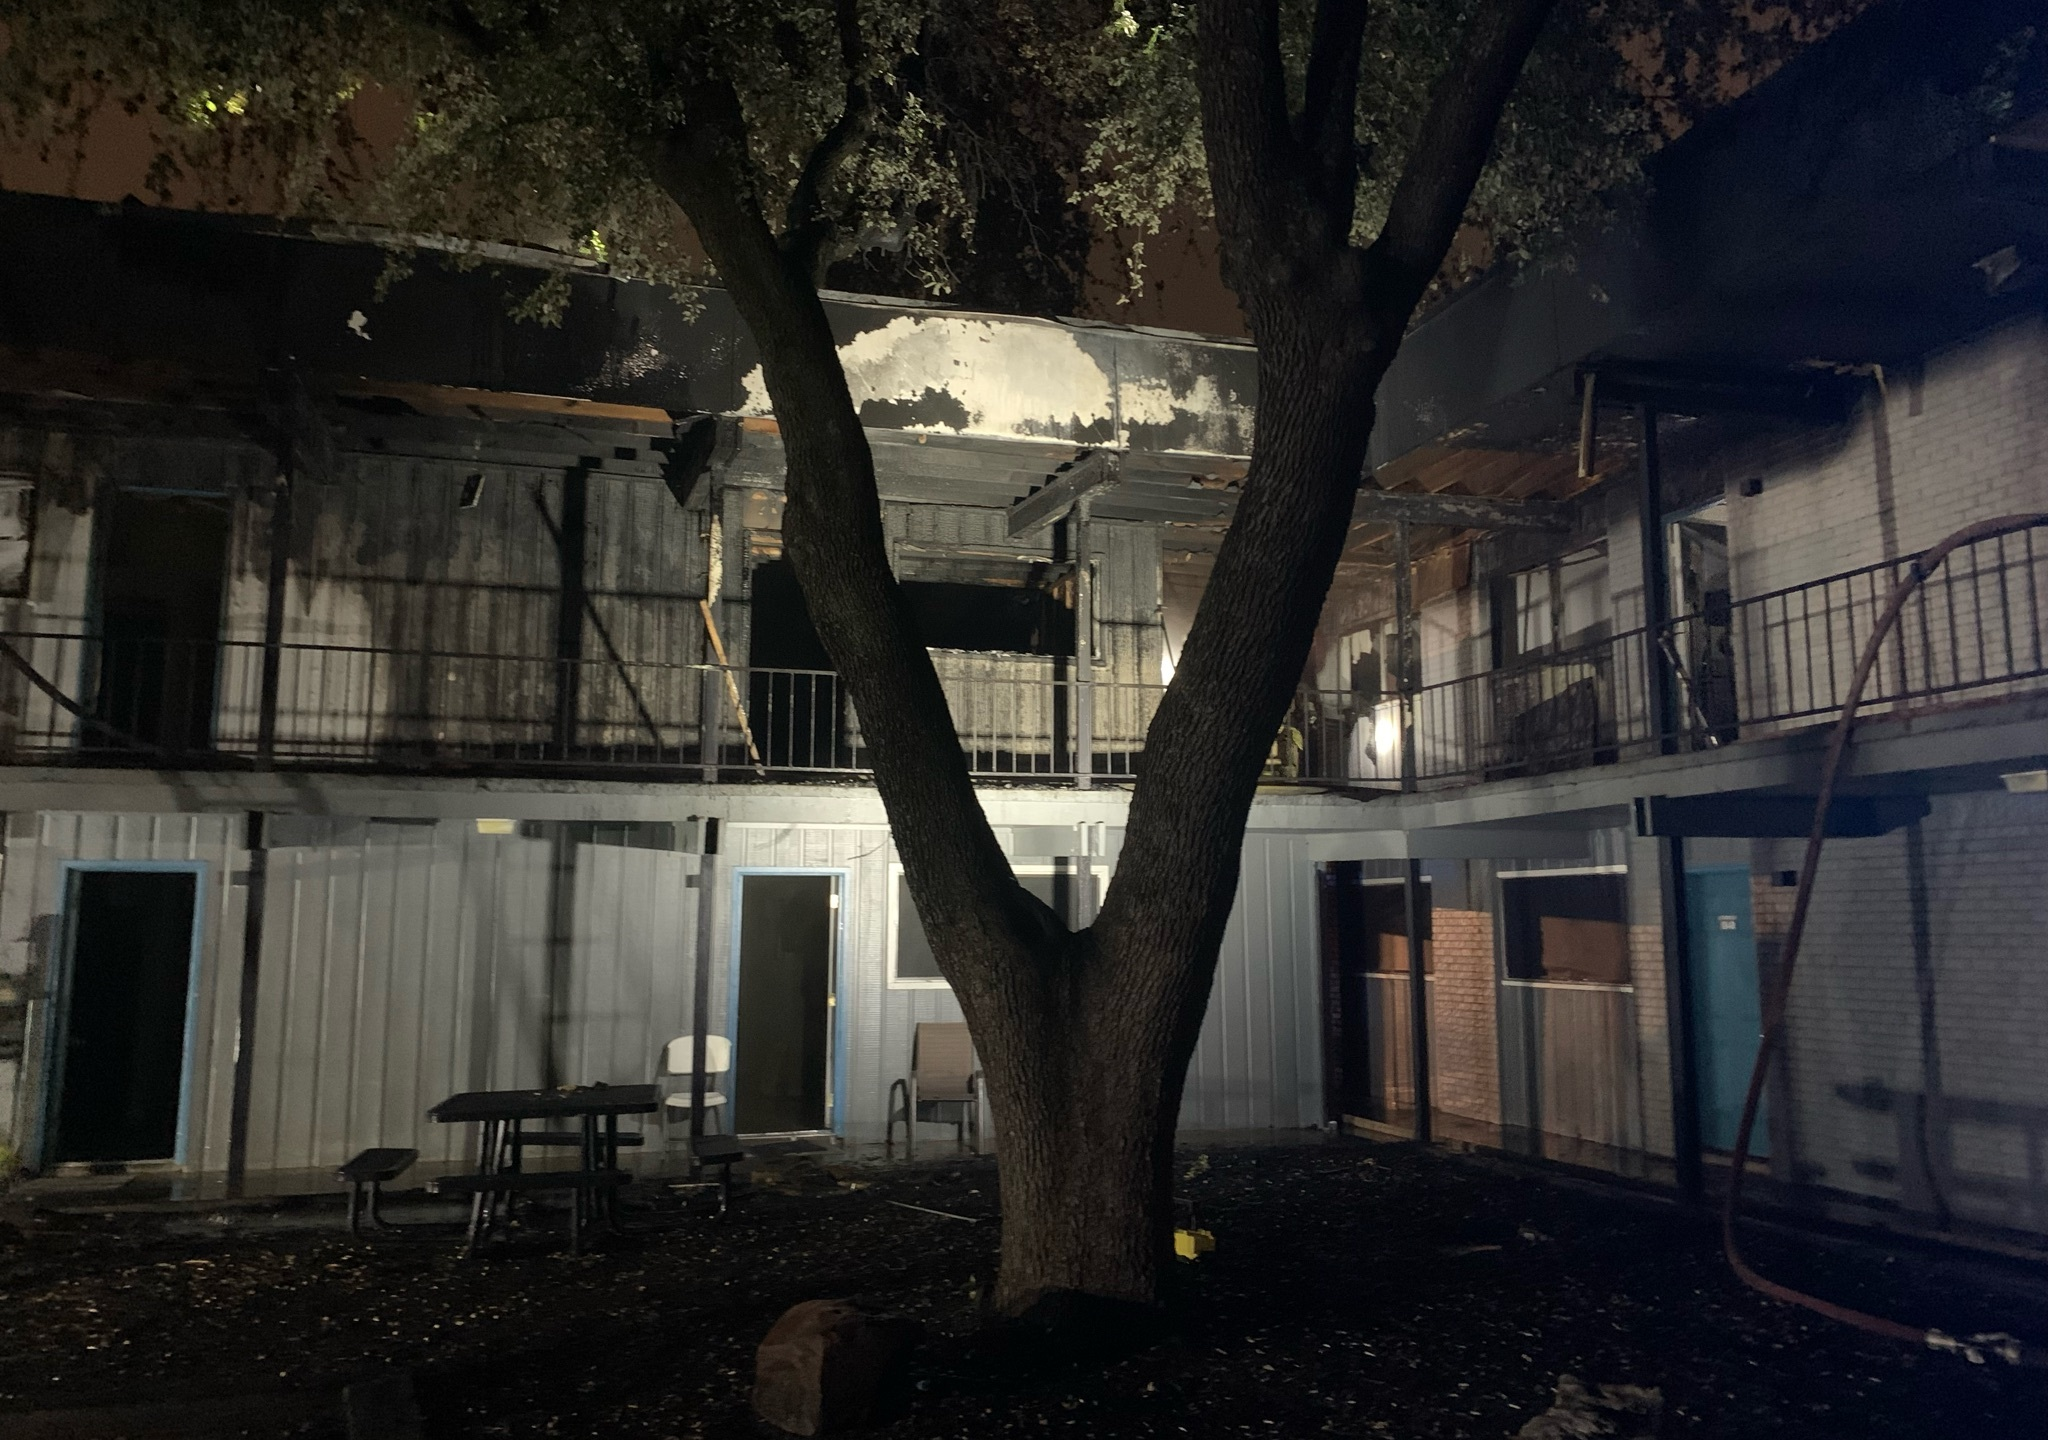 AFD responded to an apartment complex fire in northeast Austin on Sunday. Four units were damaged, but no one was injured. (AFD photo)